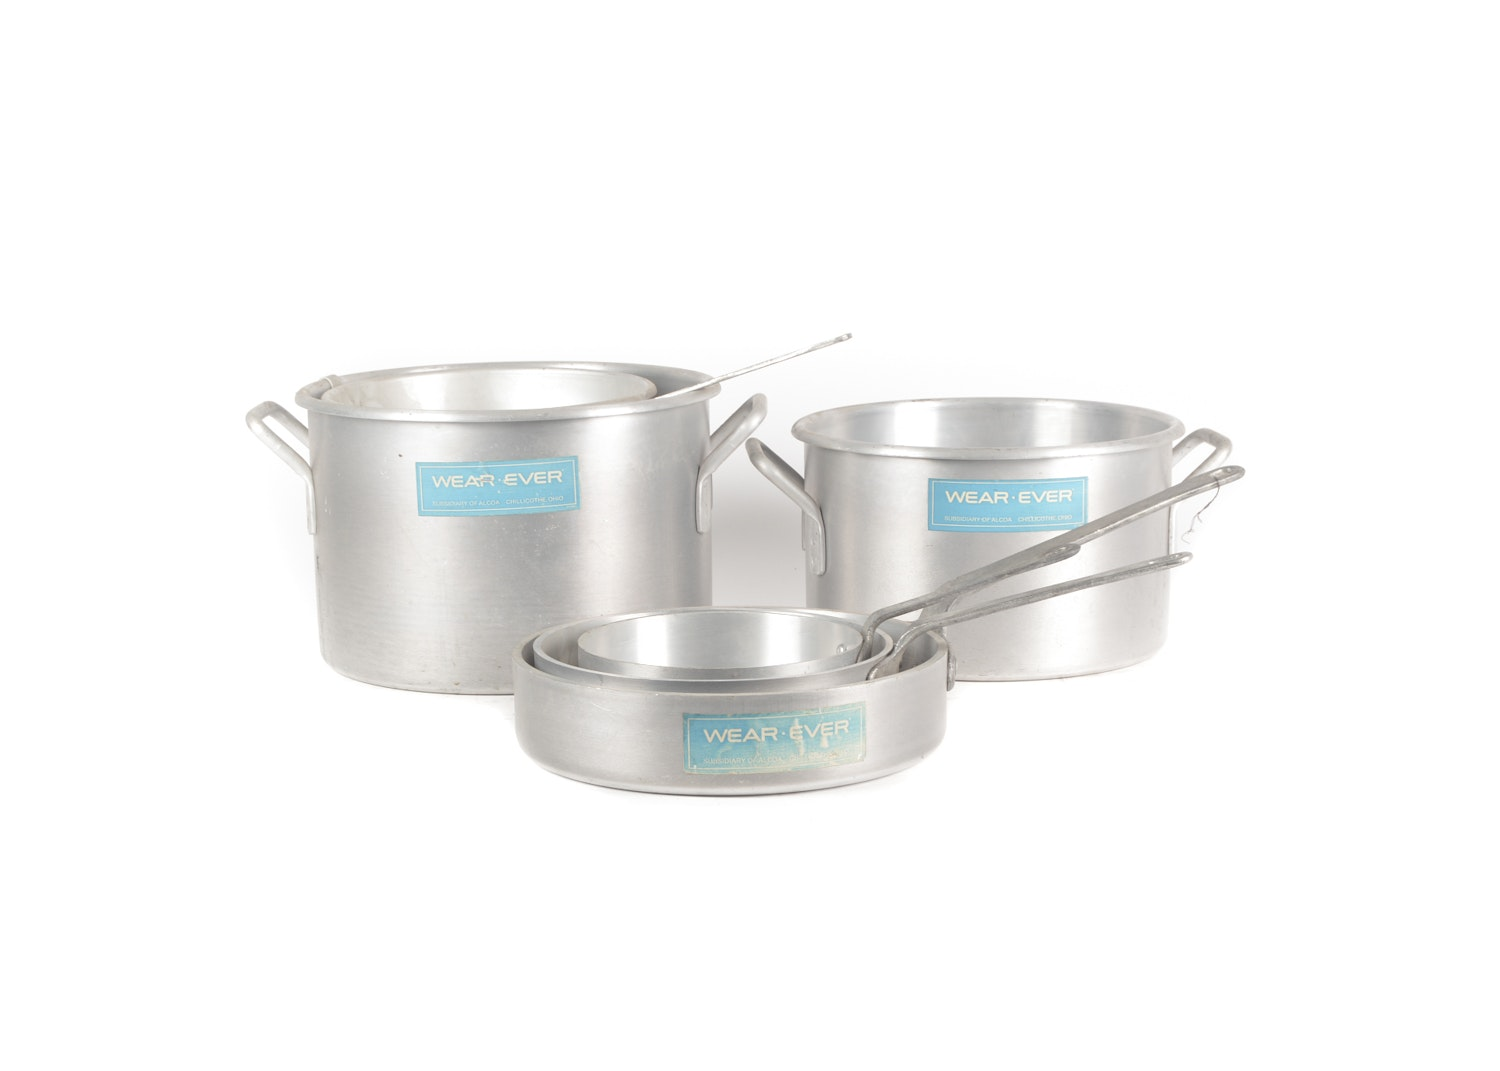 Vintage Wear-Ever Stainless Steel Pots and Pans